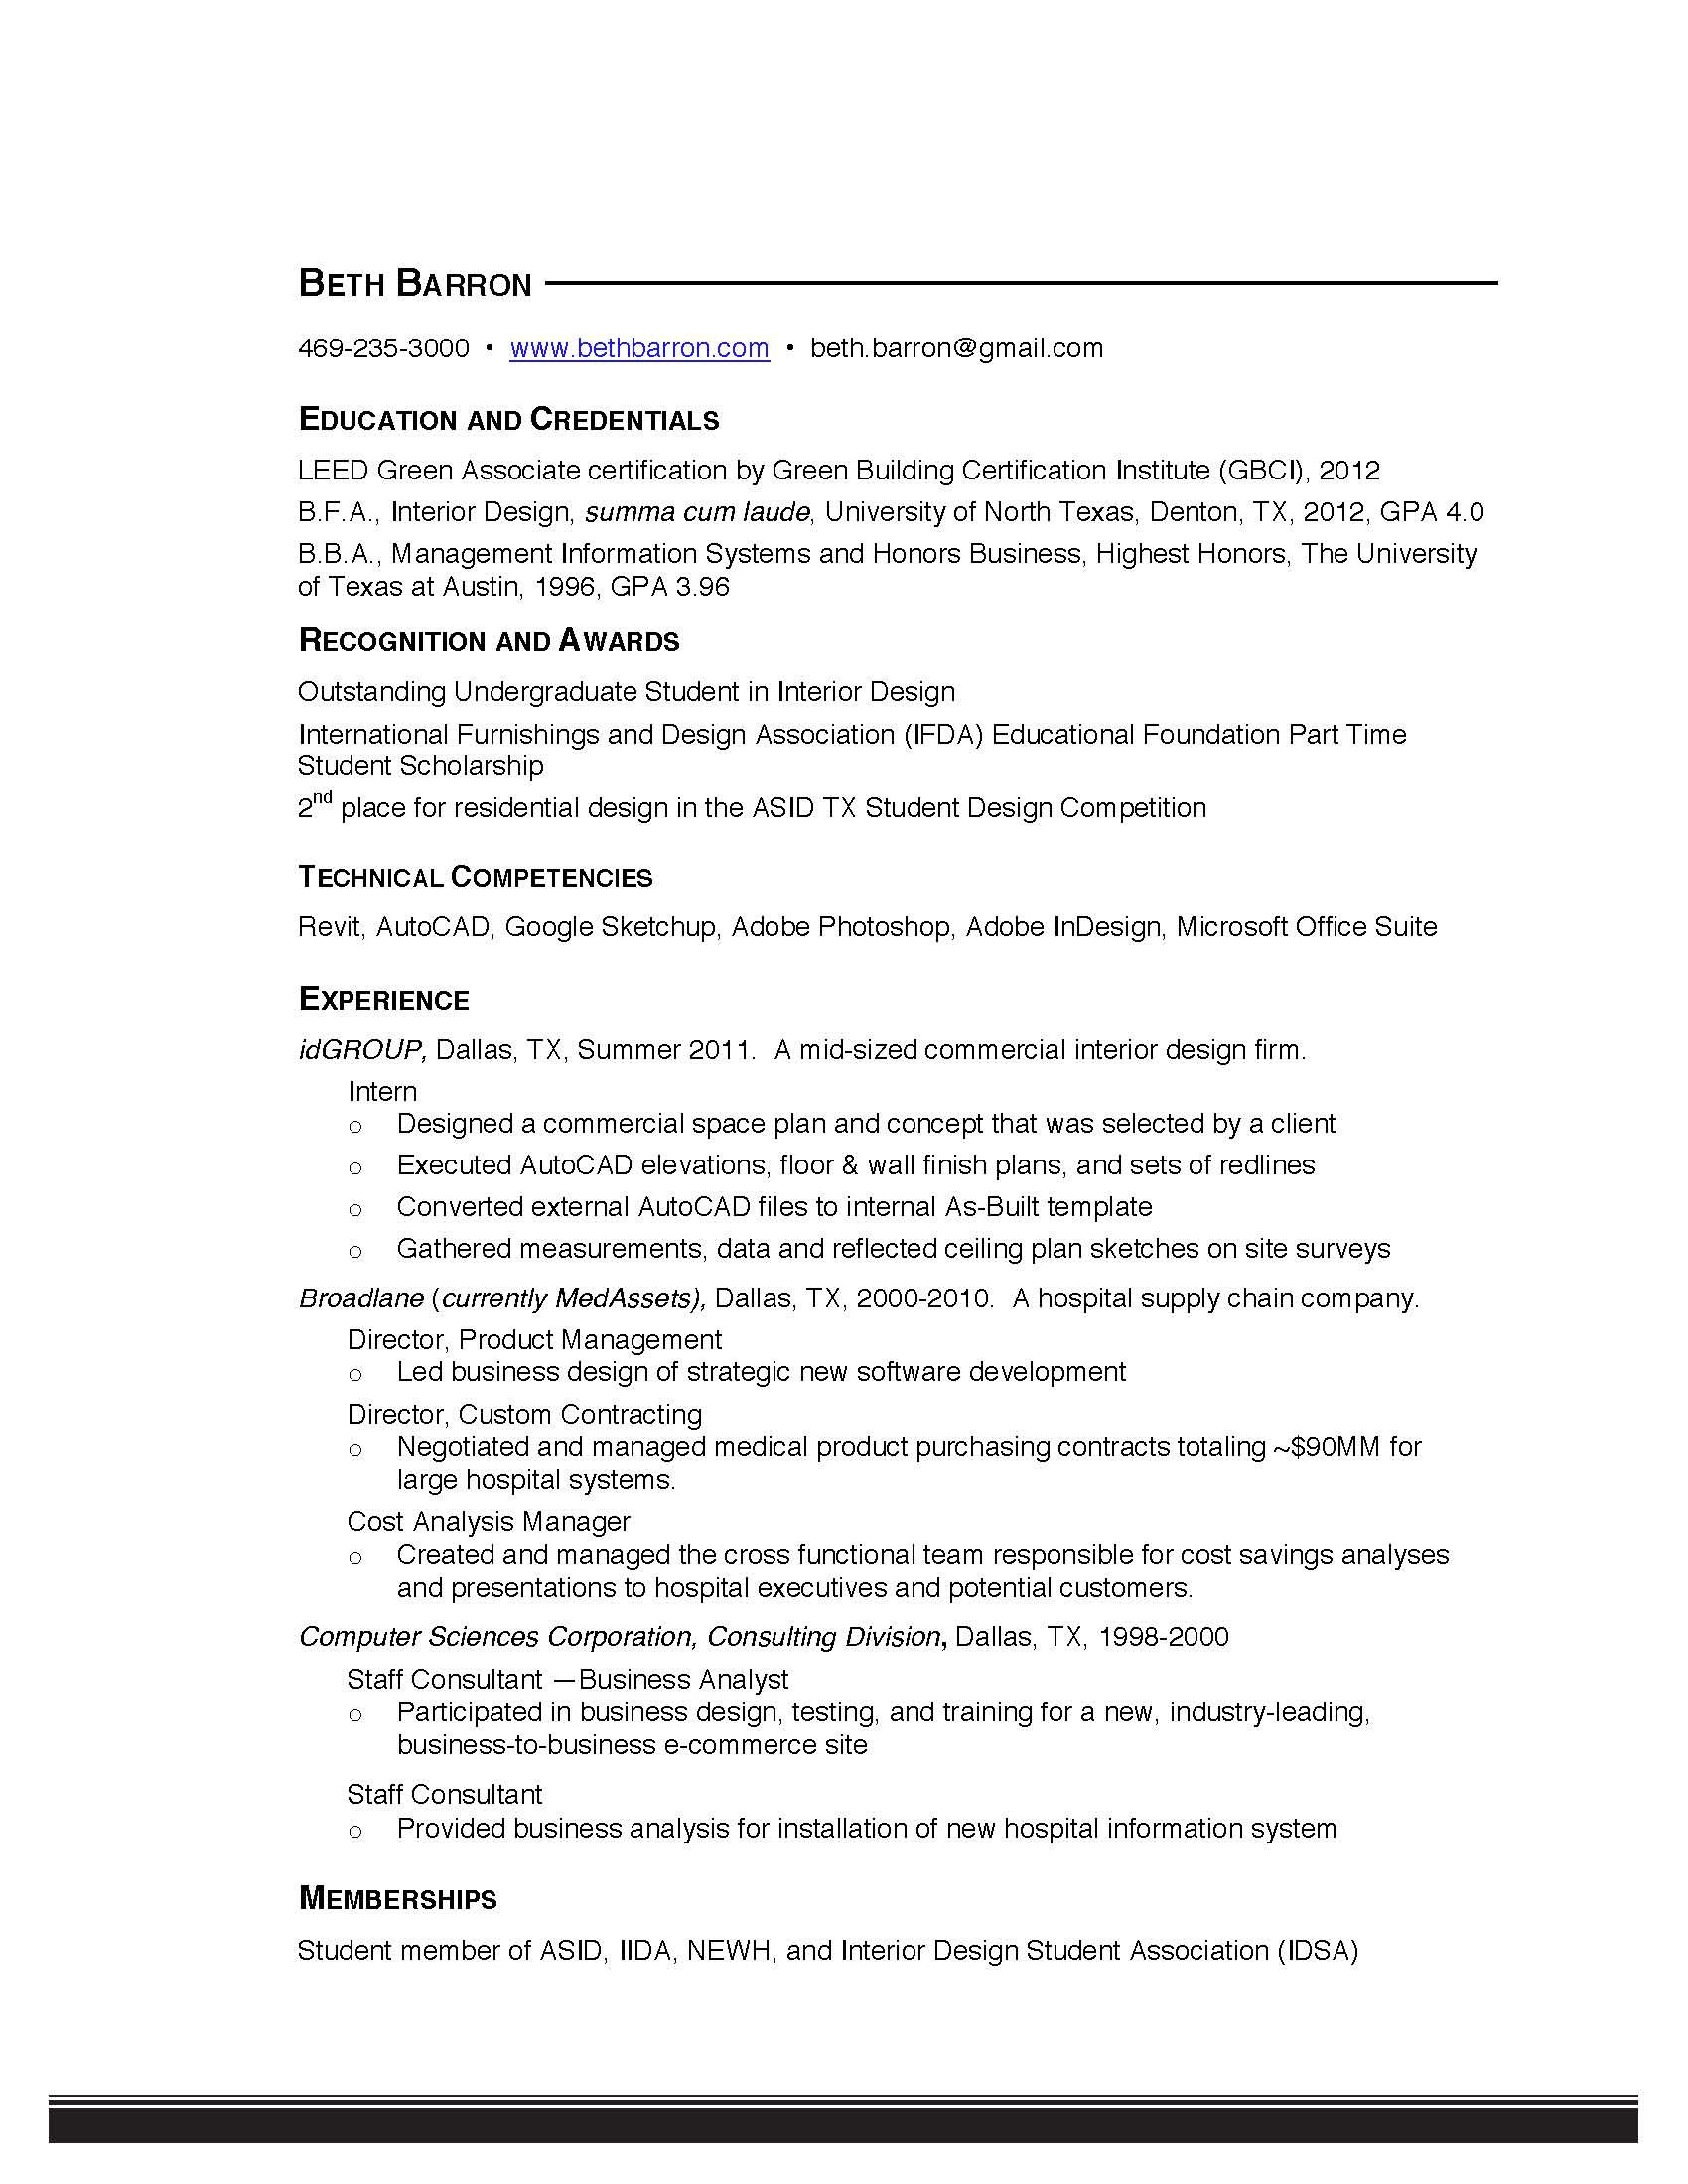 resume format references available upon request examples teacher job header retail duties Resume Resume Available Upon Request